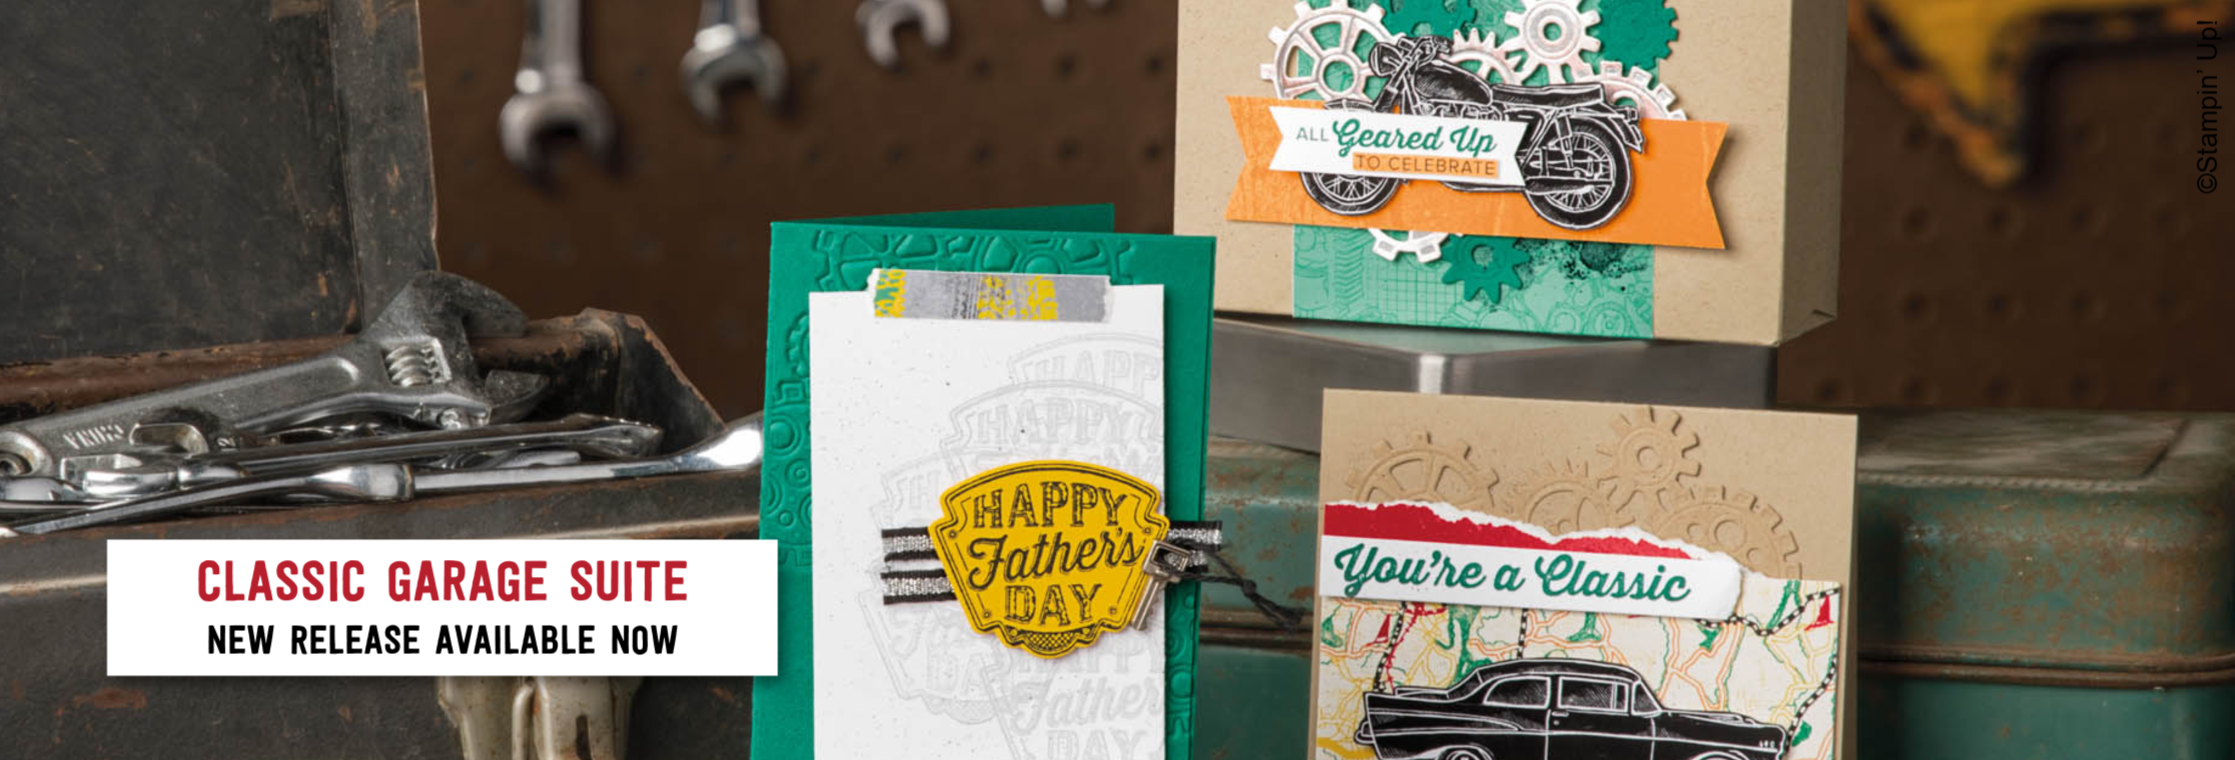 Classic Garage Suite from Stampin' Up! - New release for 2019!